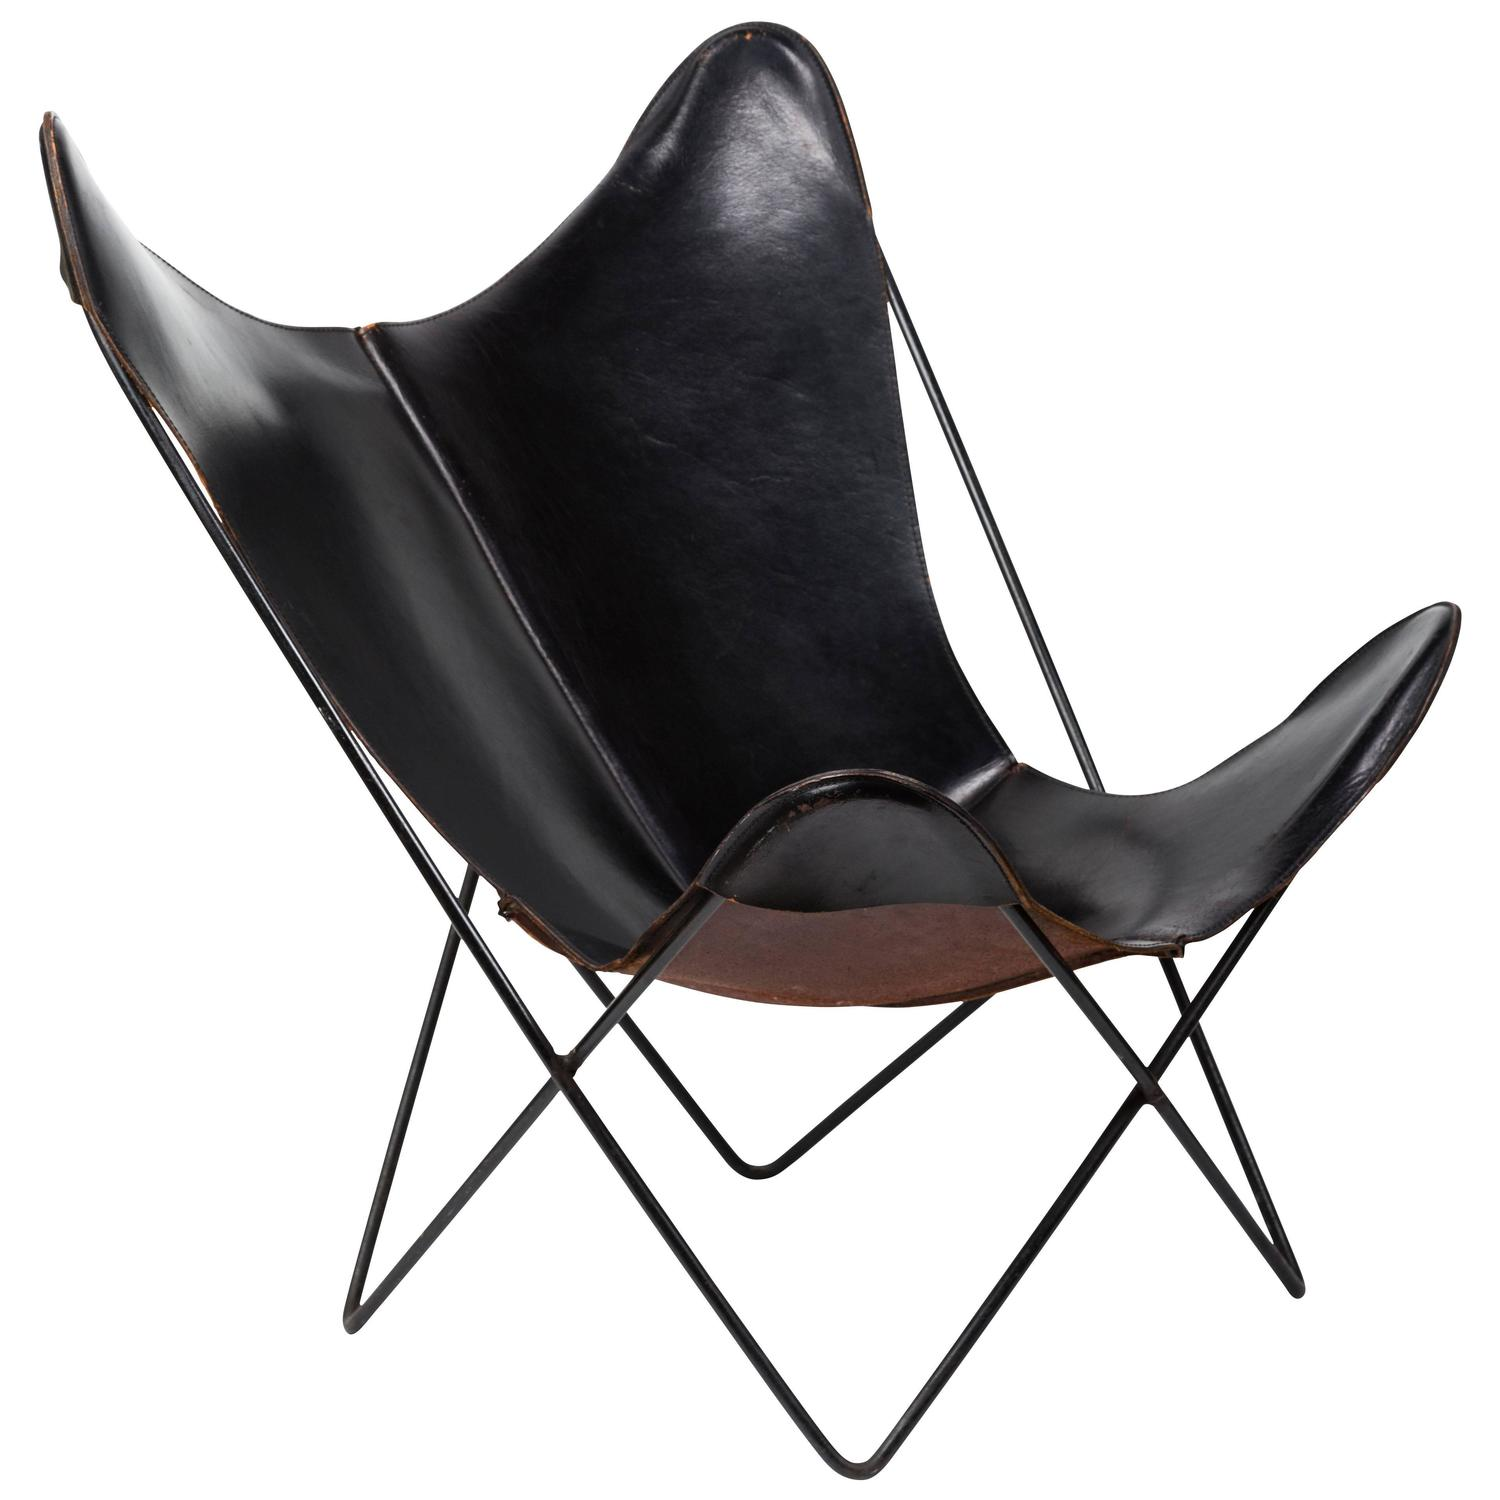 Butterfly chair original - Leather Butterfly Chair By Jorge Ferrari Hardoy For Knoll